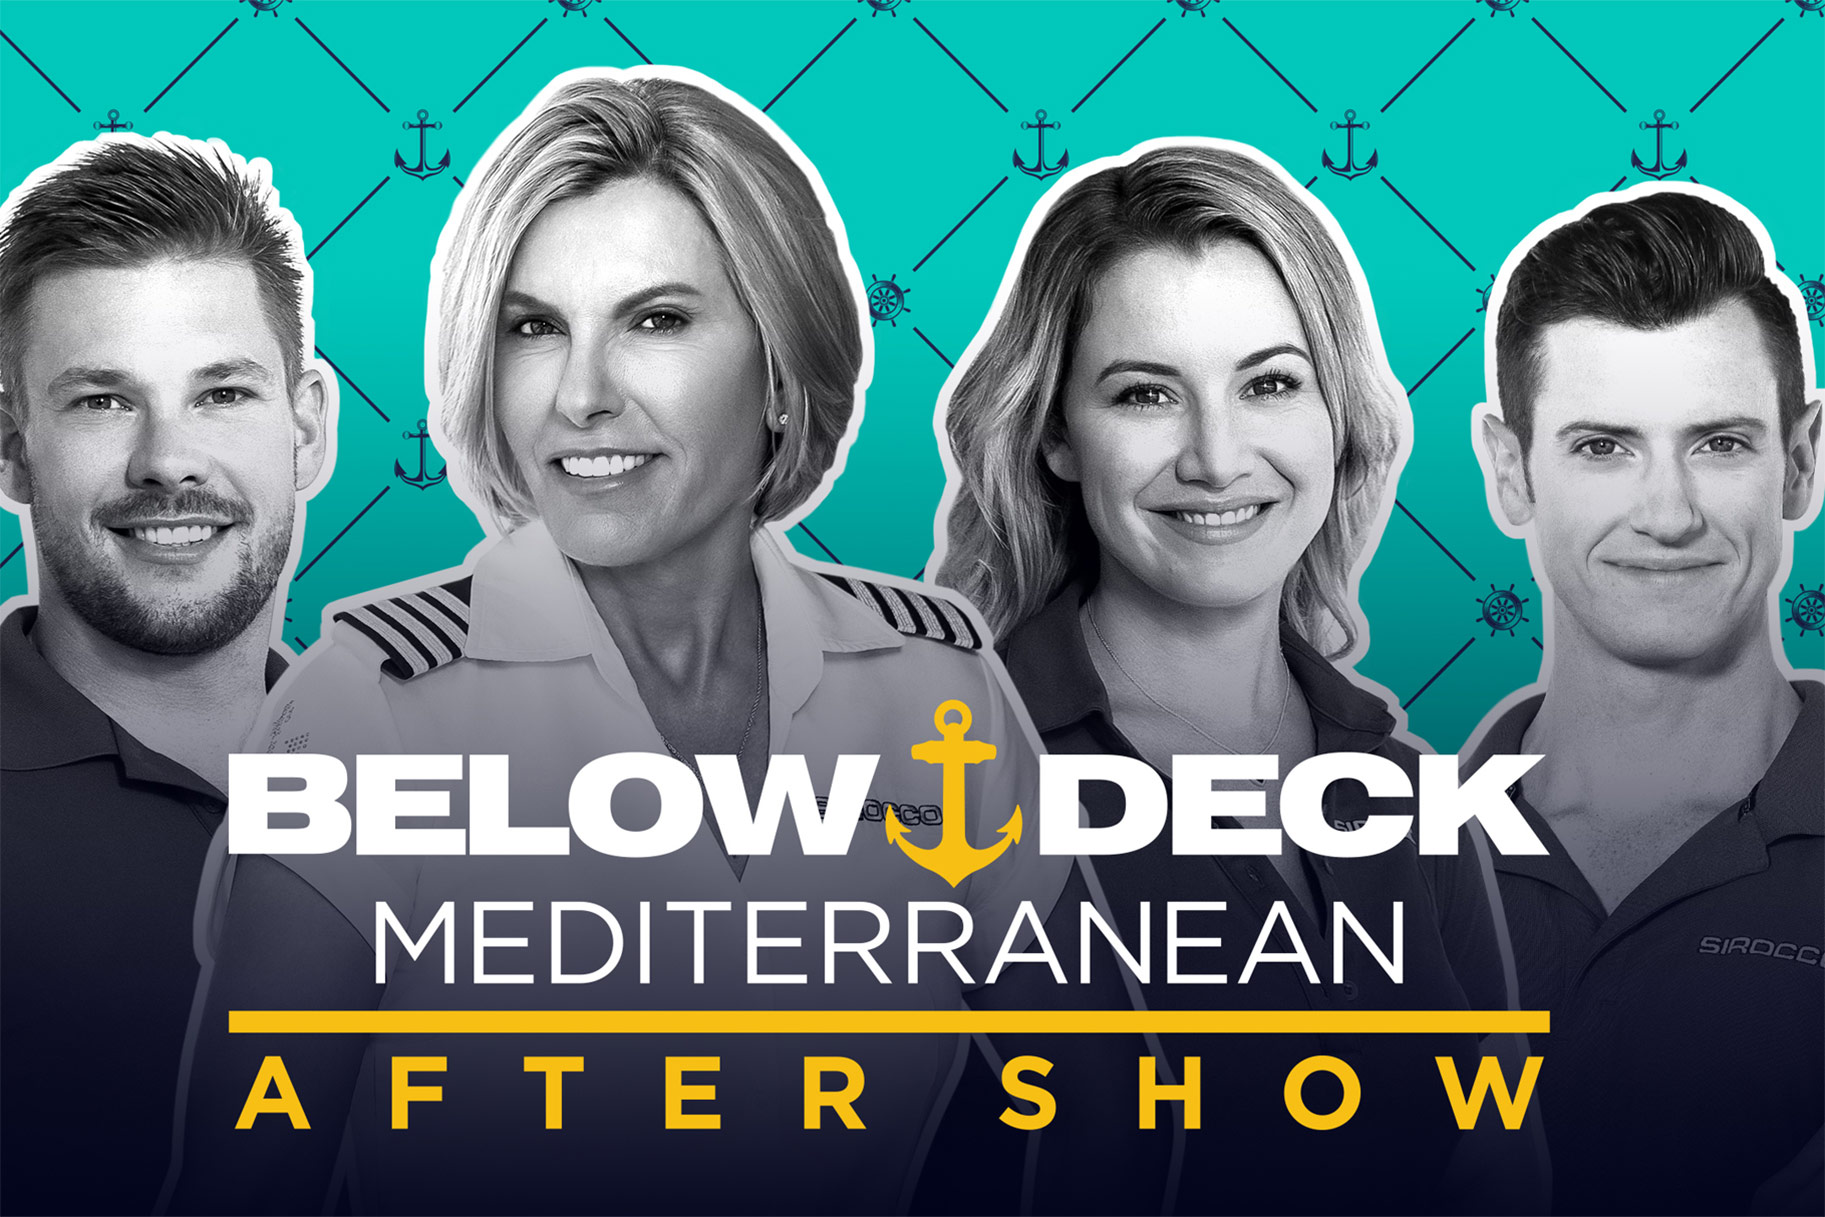 Below Deck Mediterranean After Show